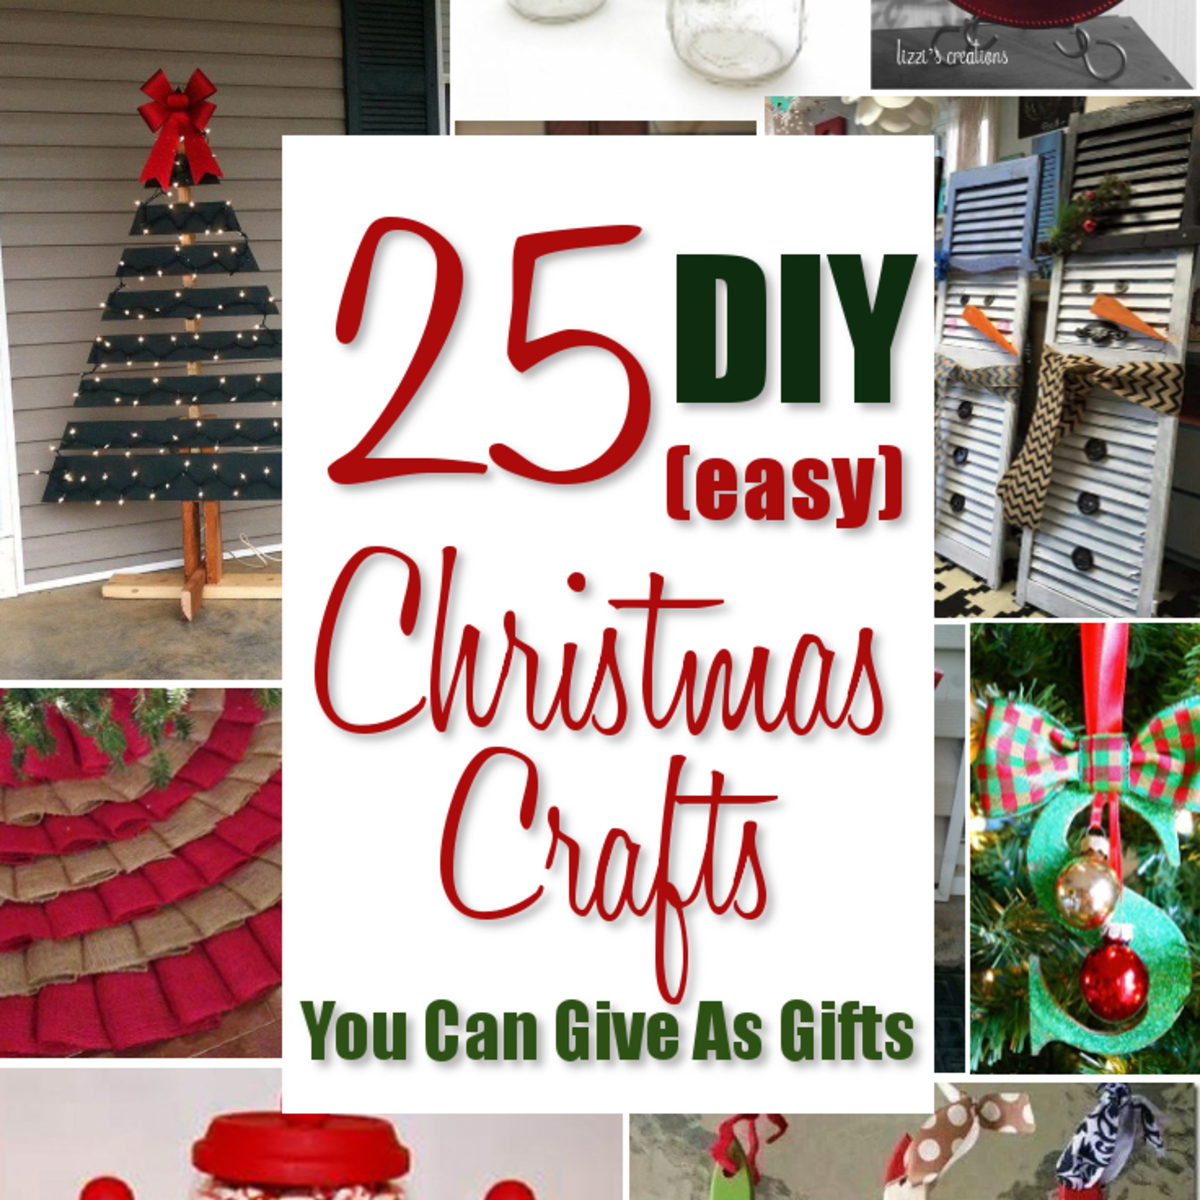 25 Easy Diy Christmas Crafts You Can Give As Gifts Holidappy Celebrations